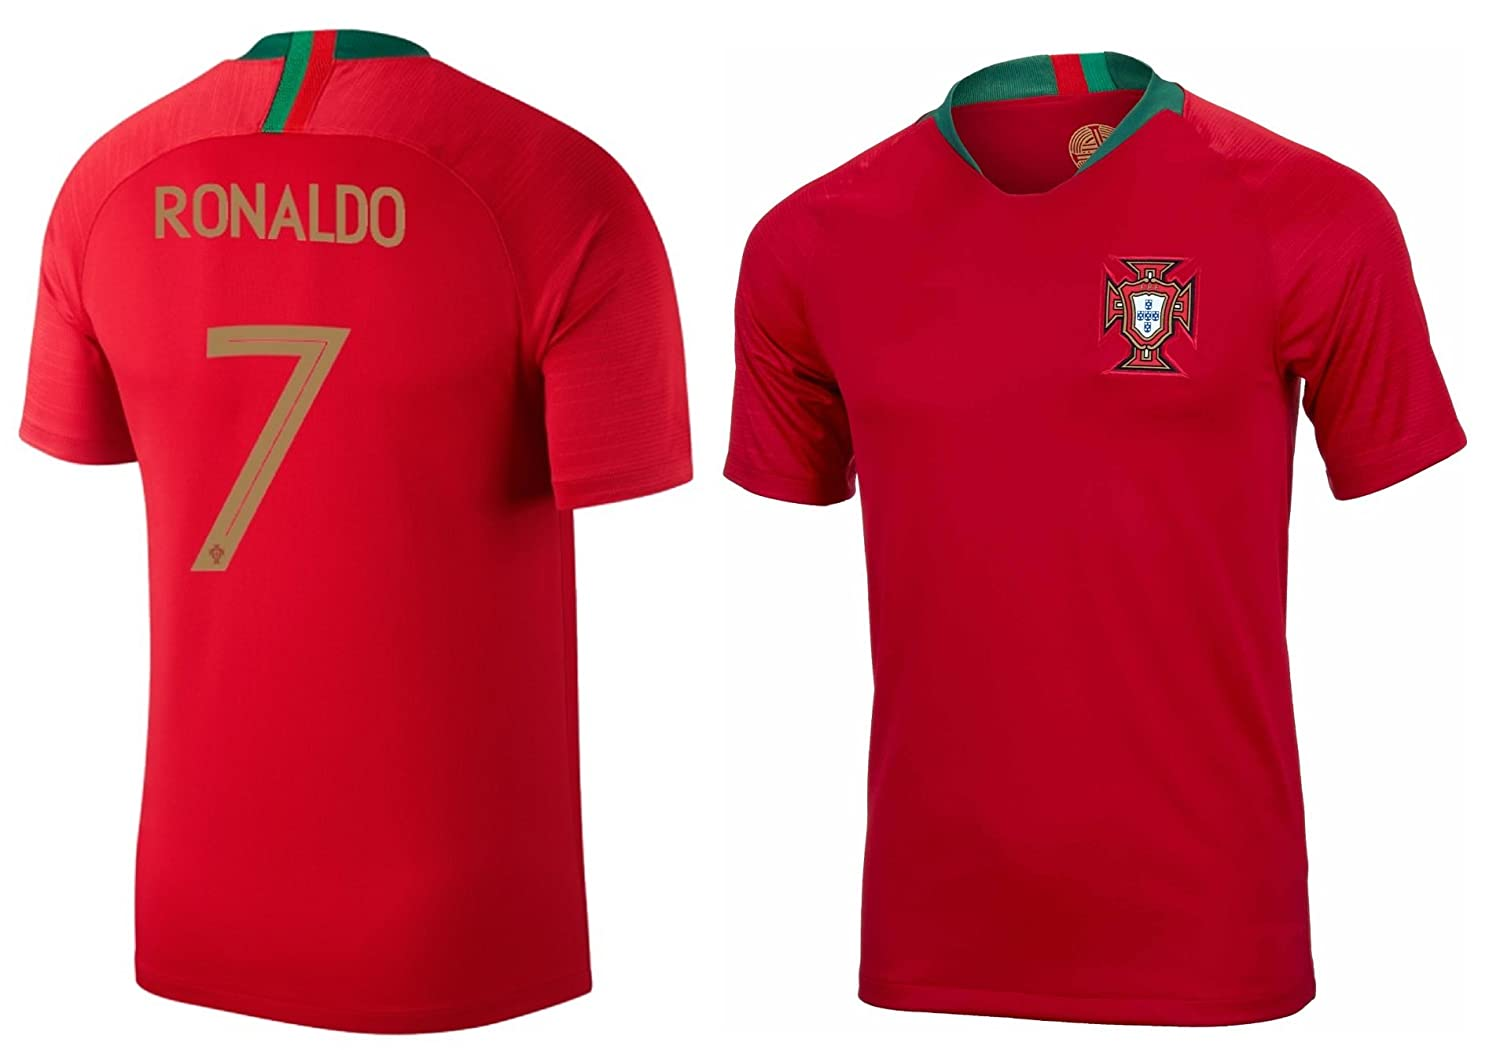 the latest 6b4e6 354e7 PFA Portugal Cristiano Ronaldo #7 Soccer Jersey Adult Men's Sizes Home  Football World Cup Premium Gift